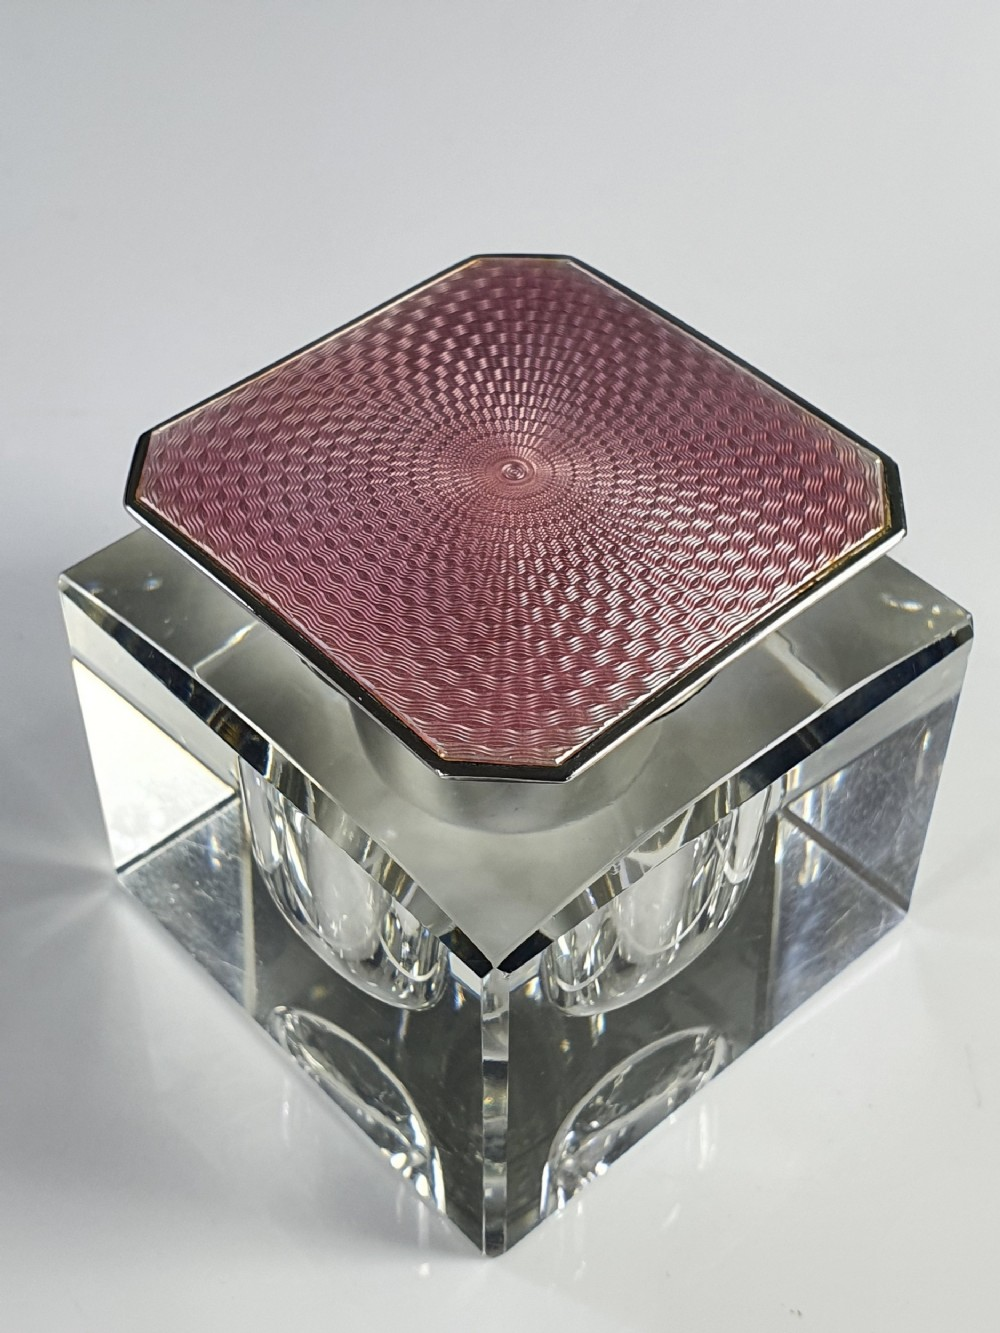 exquisite art deco guilloche pink enamel silver top cut glass inkwell birm 1929